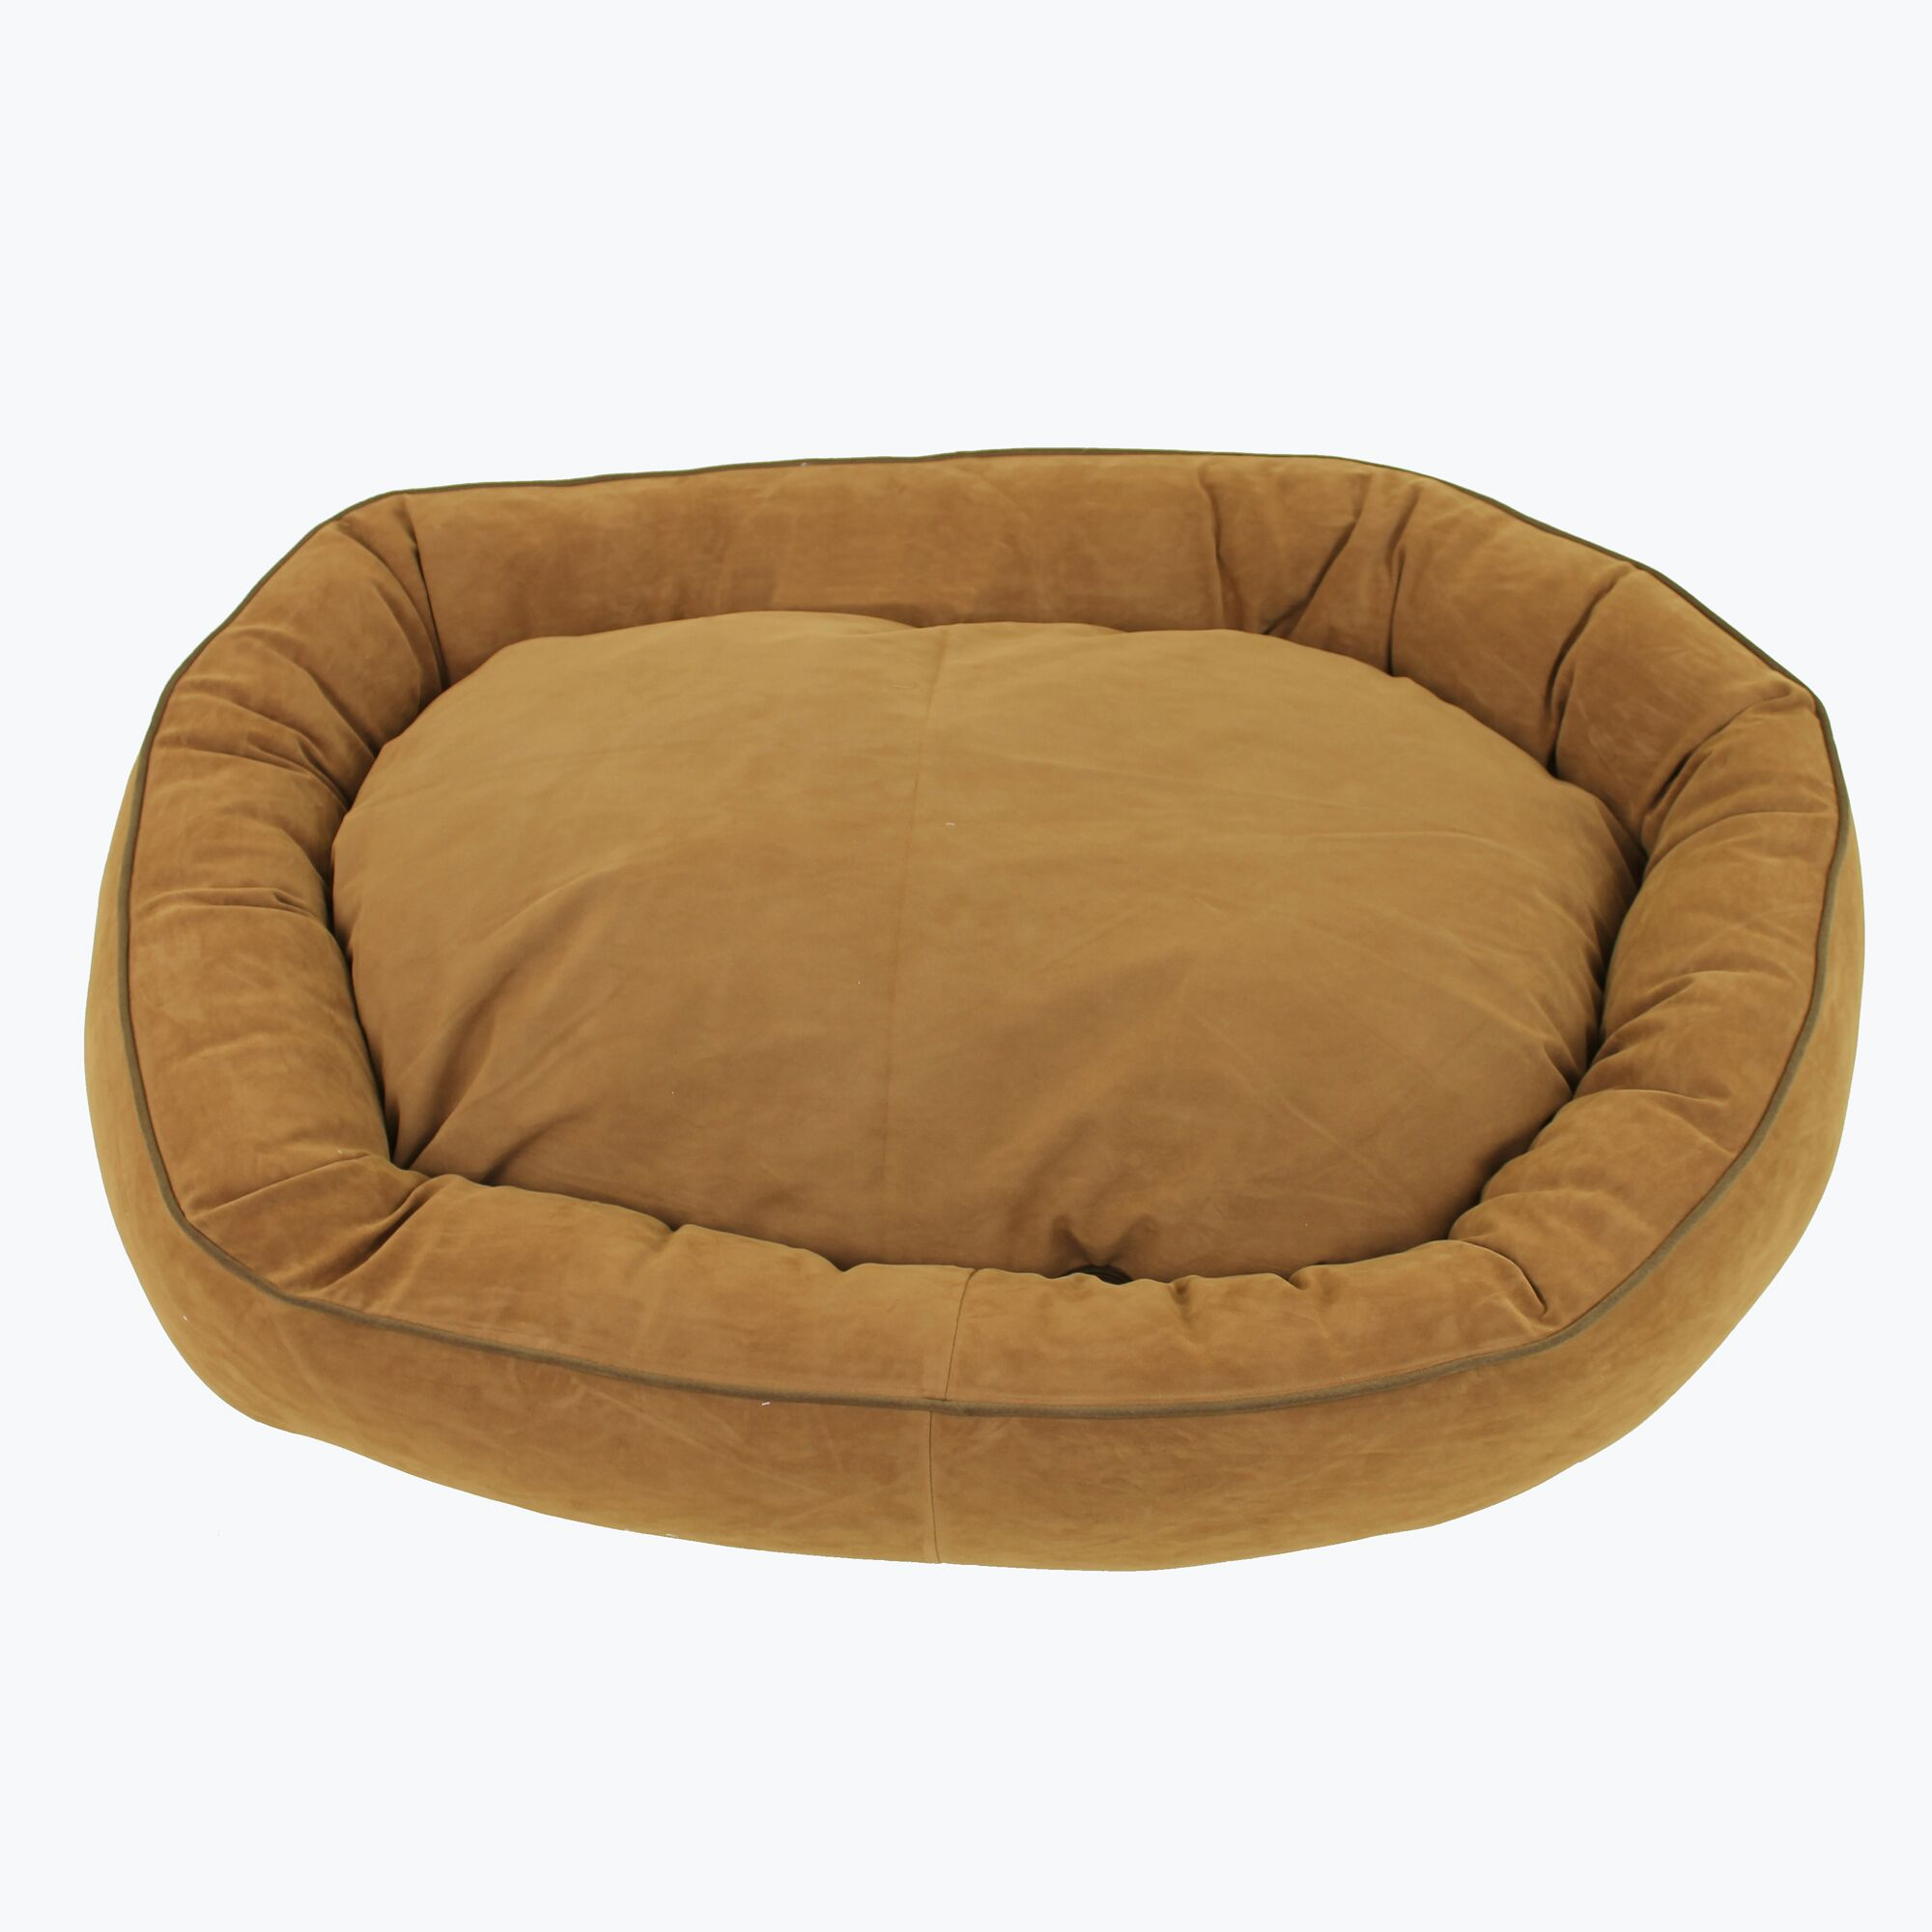 Armijo Oval Lounge Bagel Donut Dog Bed Color: Saddle, Size: Large (36